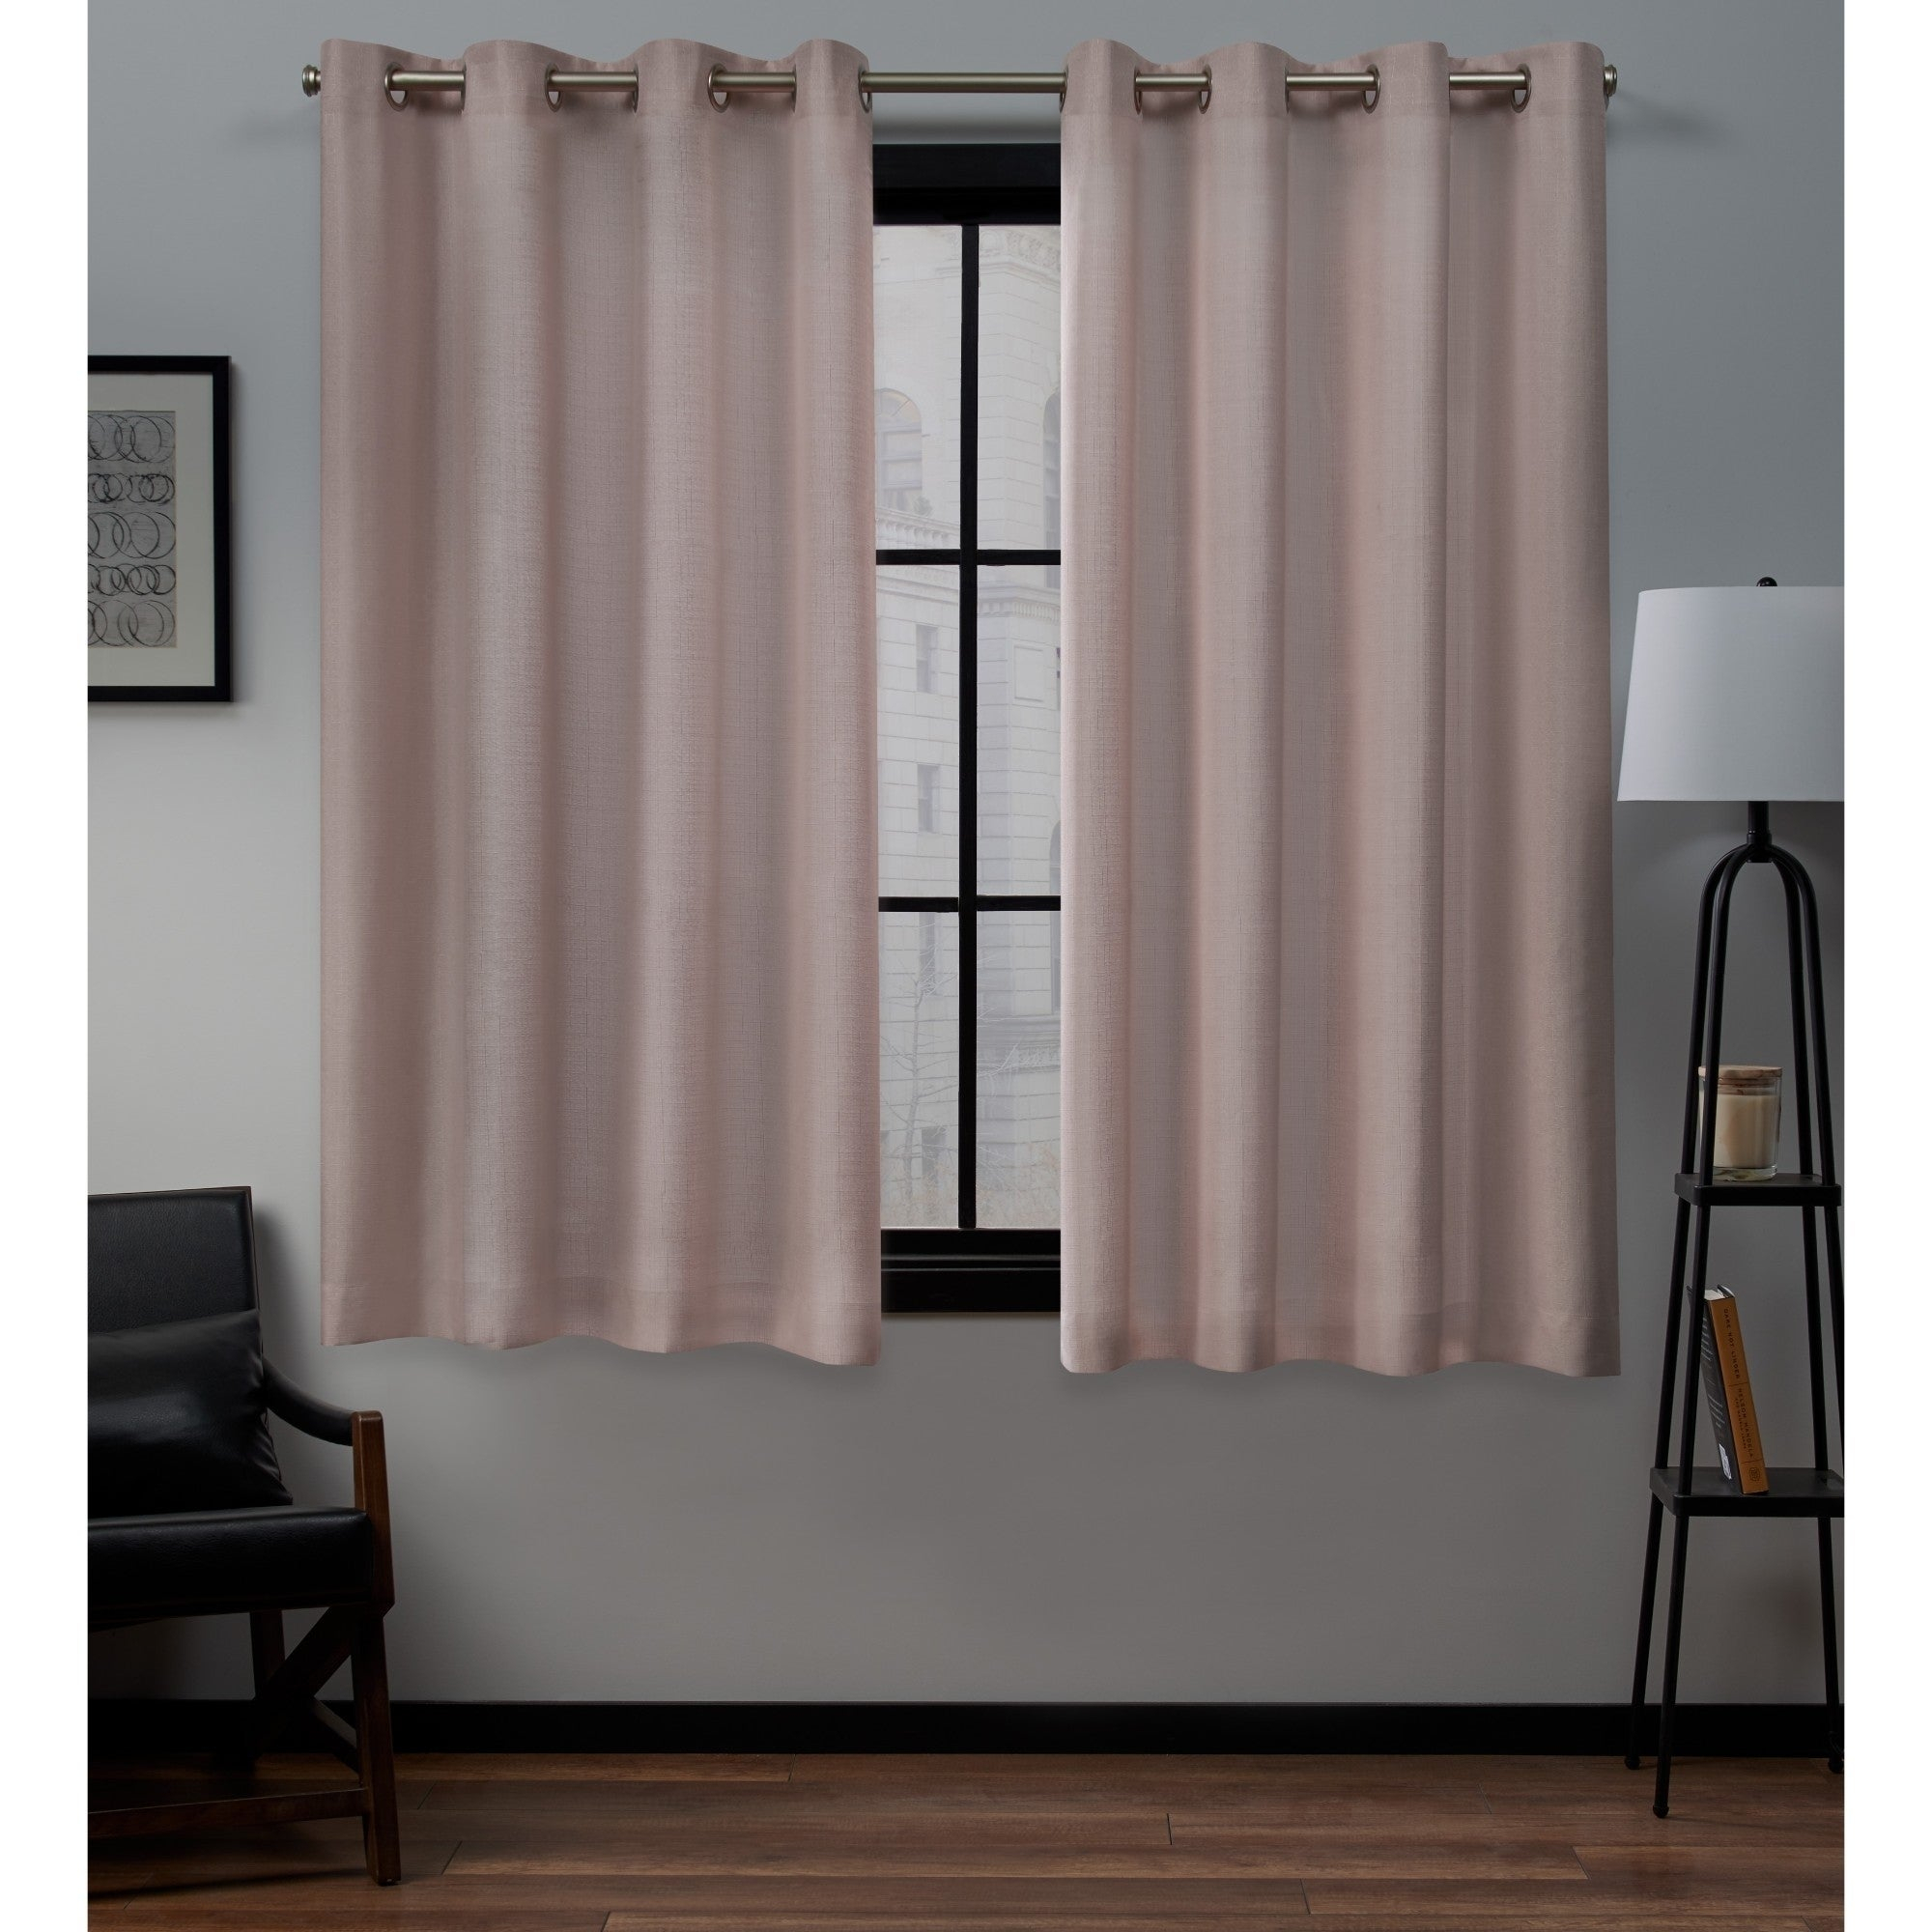 Porch & Den Sugar Creek Grommet Top Loha Linen Window Curtain Panel Pair In Winter White (52x63)(as Is Item) | Overstock Shopping – The Best Deals Intended For Sugar Creek Grommet Top Loha Linen Window Curtain Panel Pairs (View 7 of 30)